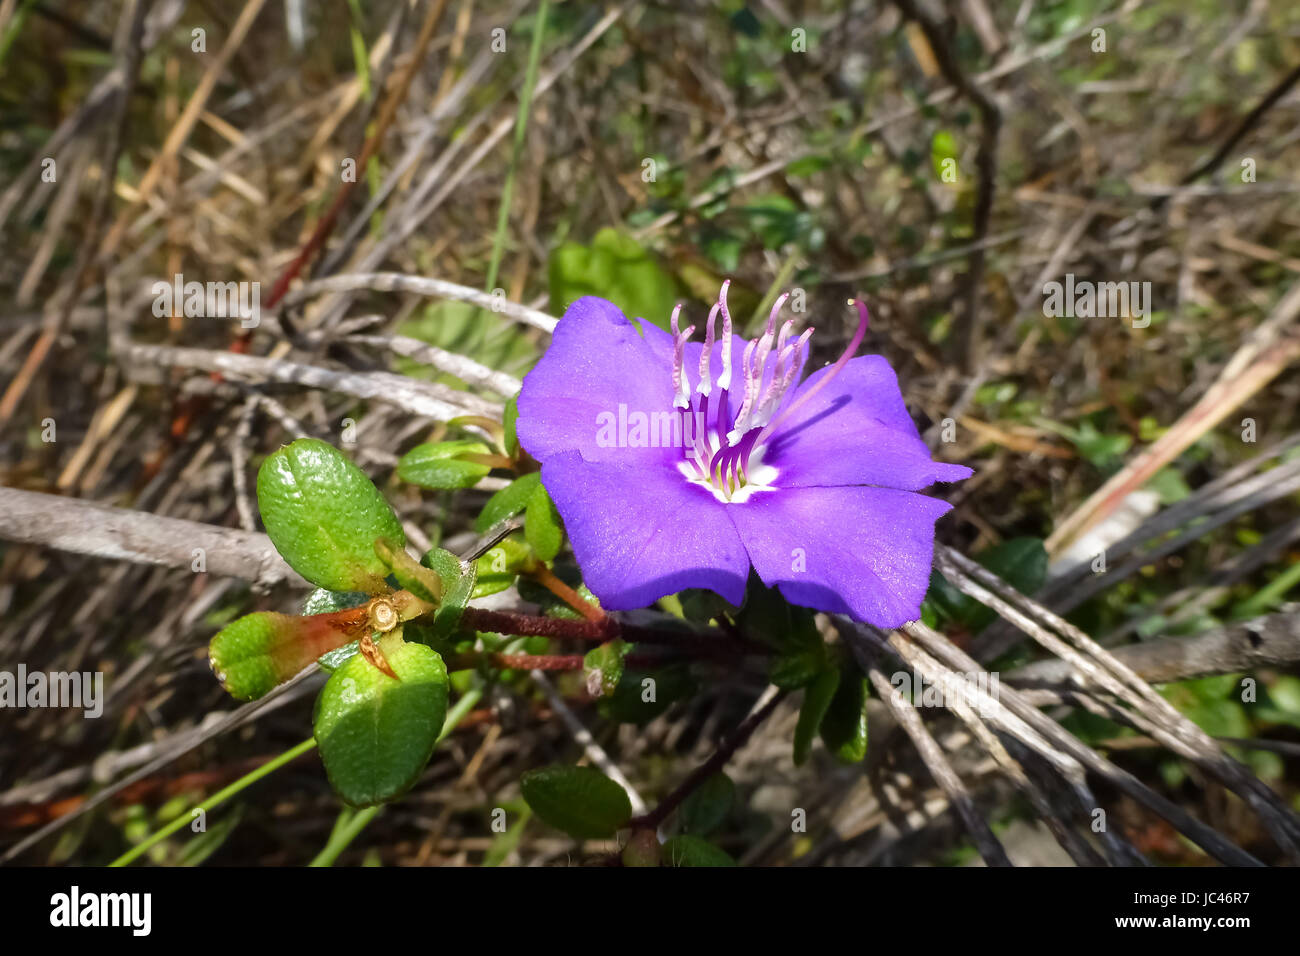 Violet flower with stamen upright, endemic in the Chapada Diamantina, Brazil - Stock Image